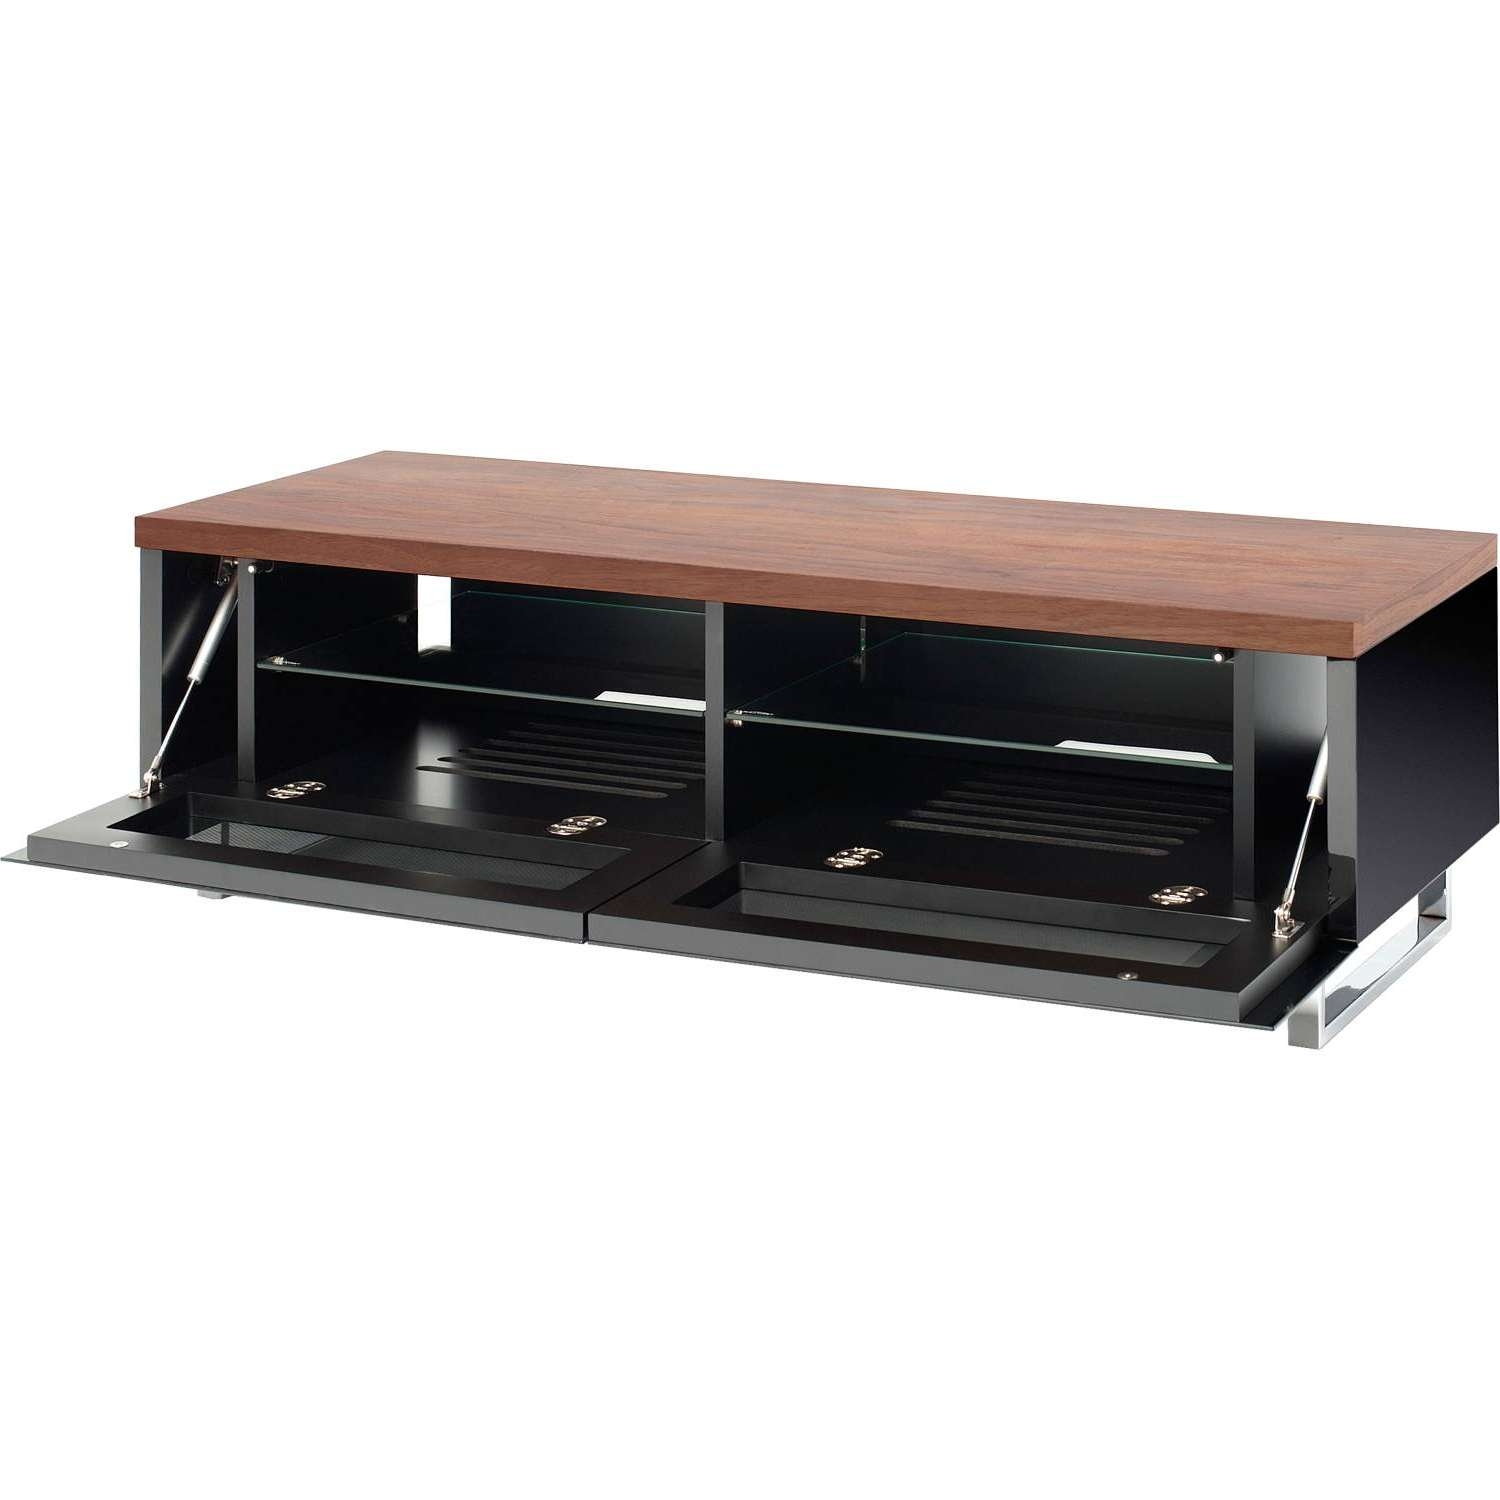 Techlink Panorama Pm120w Piano Black & Walnut Tv Stand For Up To Within Techlink Panorama Walnut Tv Stands (View 4 of 15)